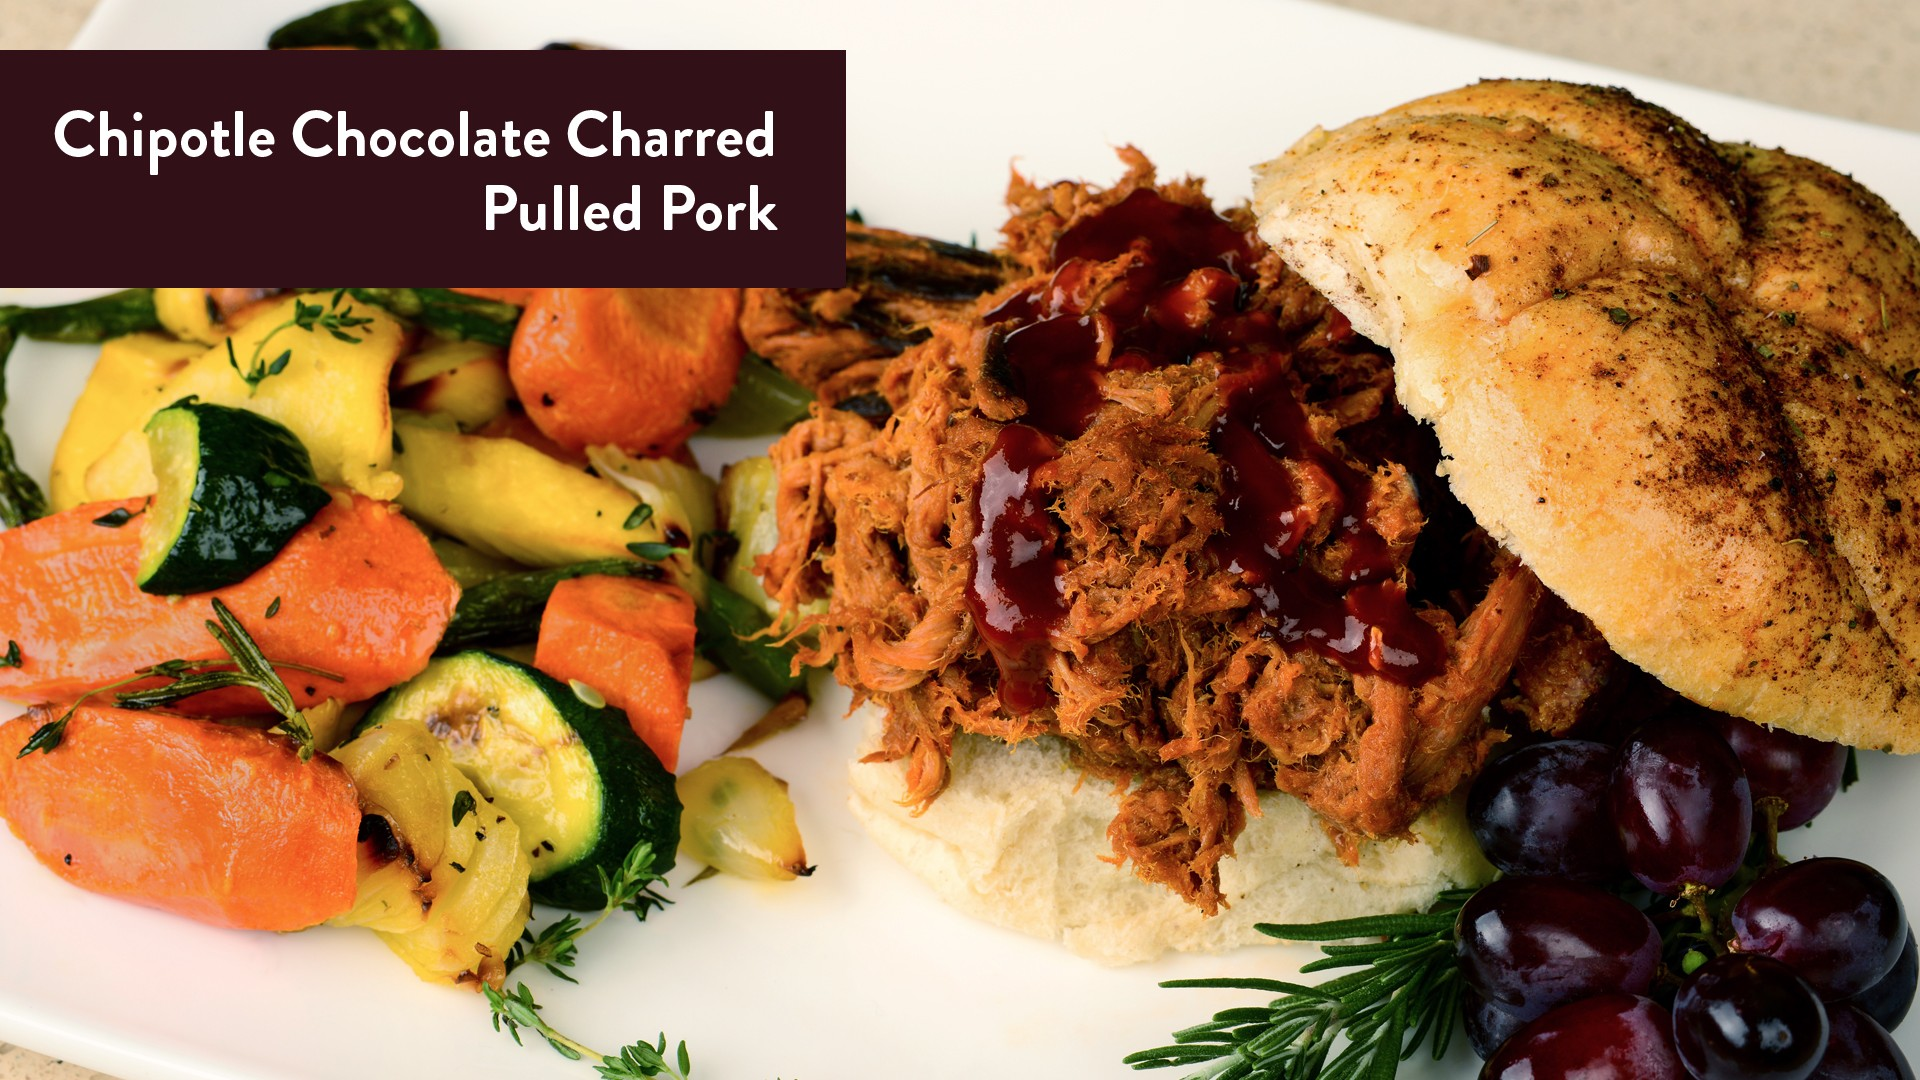 Chipotle Chocolate Charred Pulled Pork from Hershey's Chocolate World